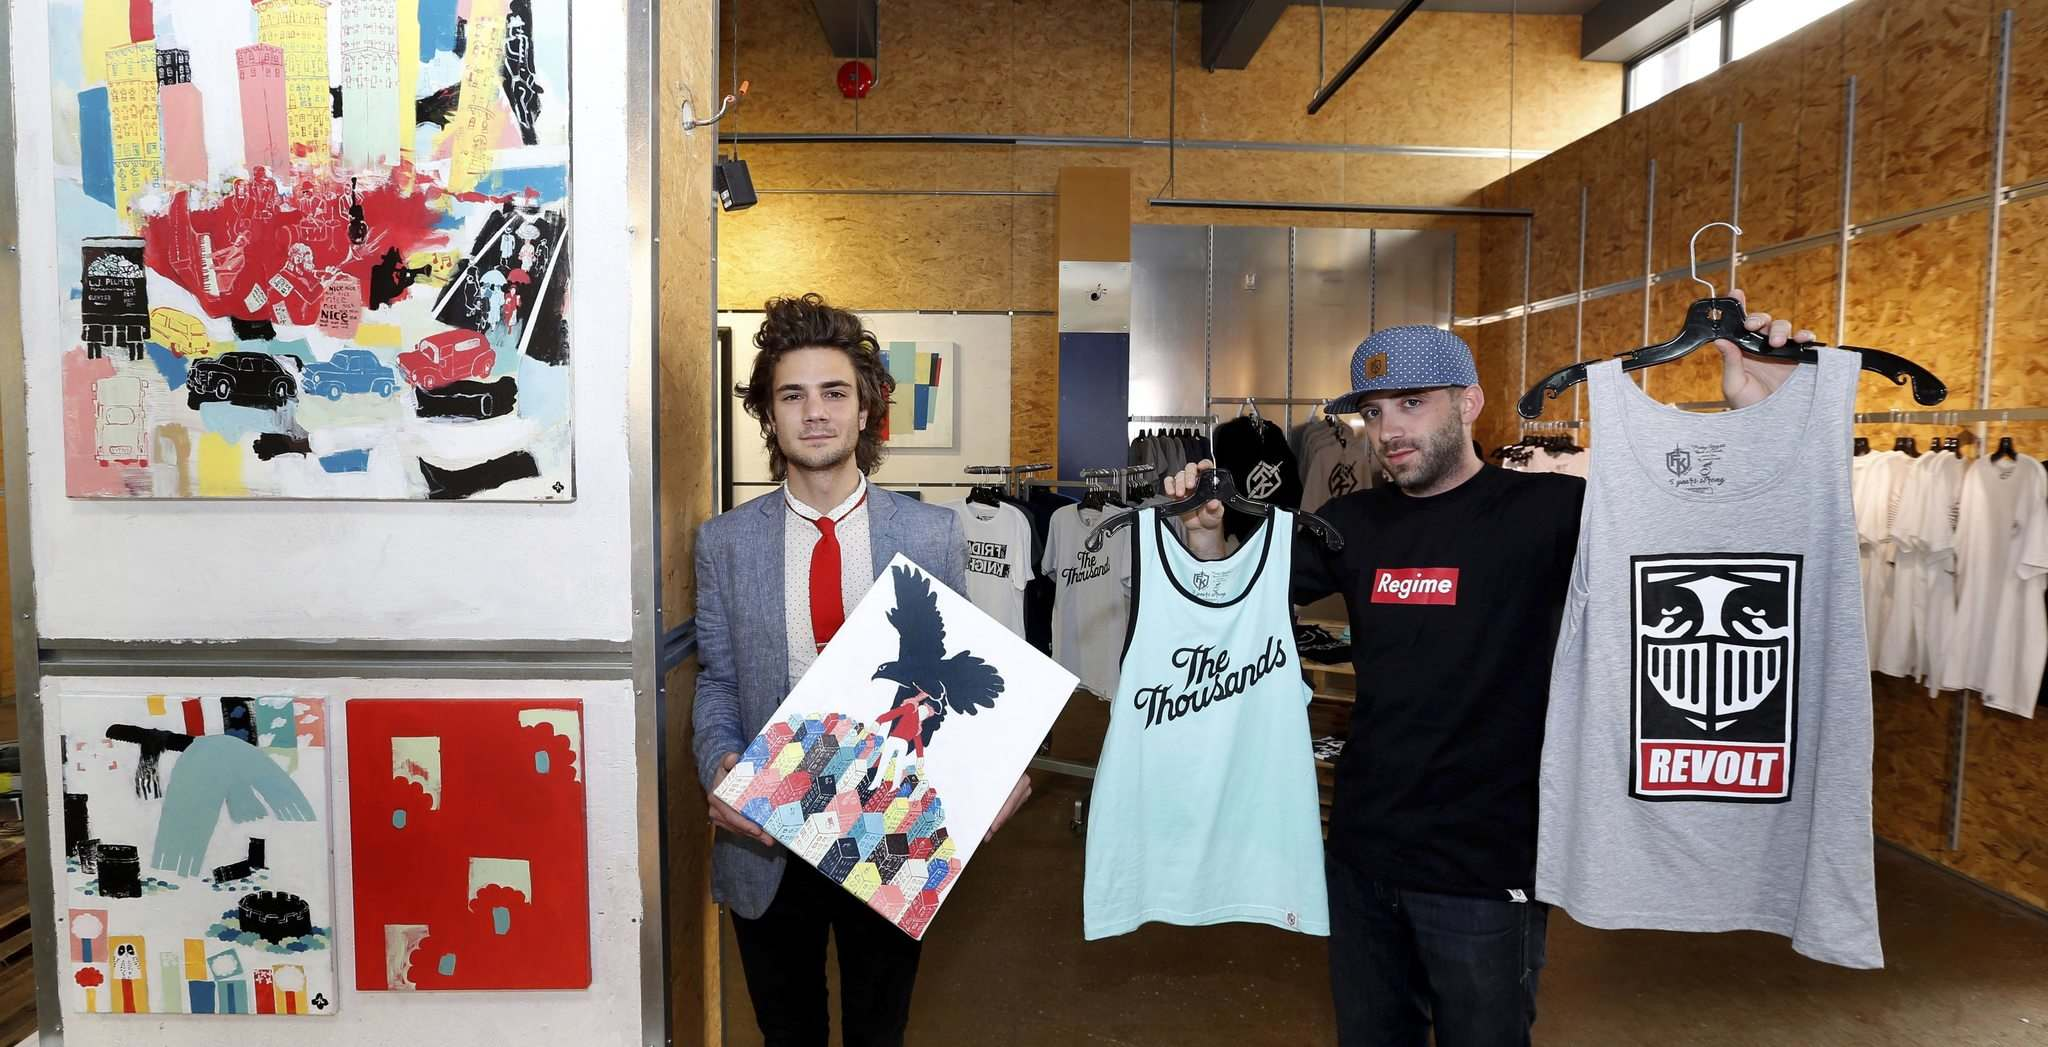 WAYNE GLOWACKI / WINNIPEG FREE PRESS</p><p>The Downtown Biz is launching its fourth annual Launch It! Retail Incubator and Pop Up program today. Artist Josiah Koppanyi (left) and clothier Eric Olek display some of their products.</p>